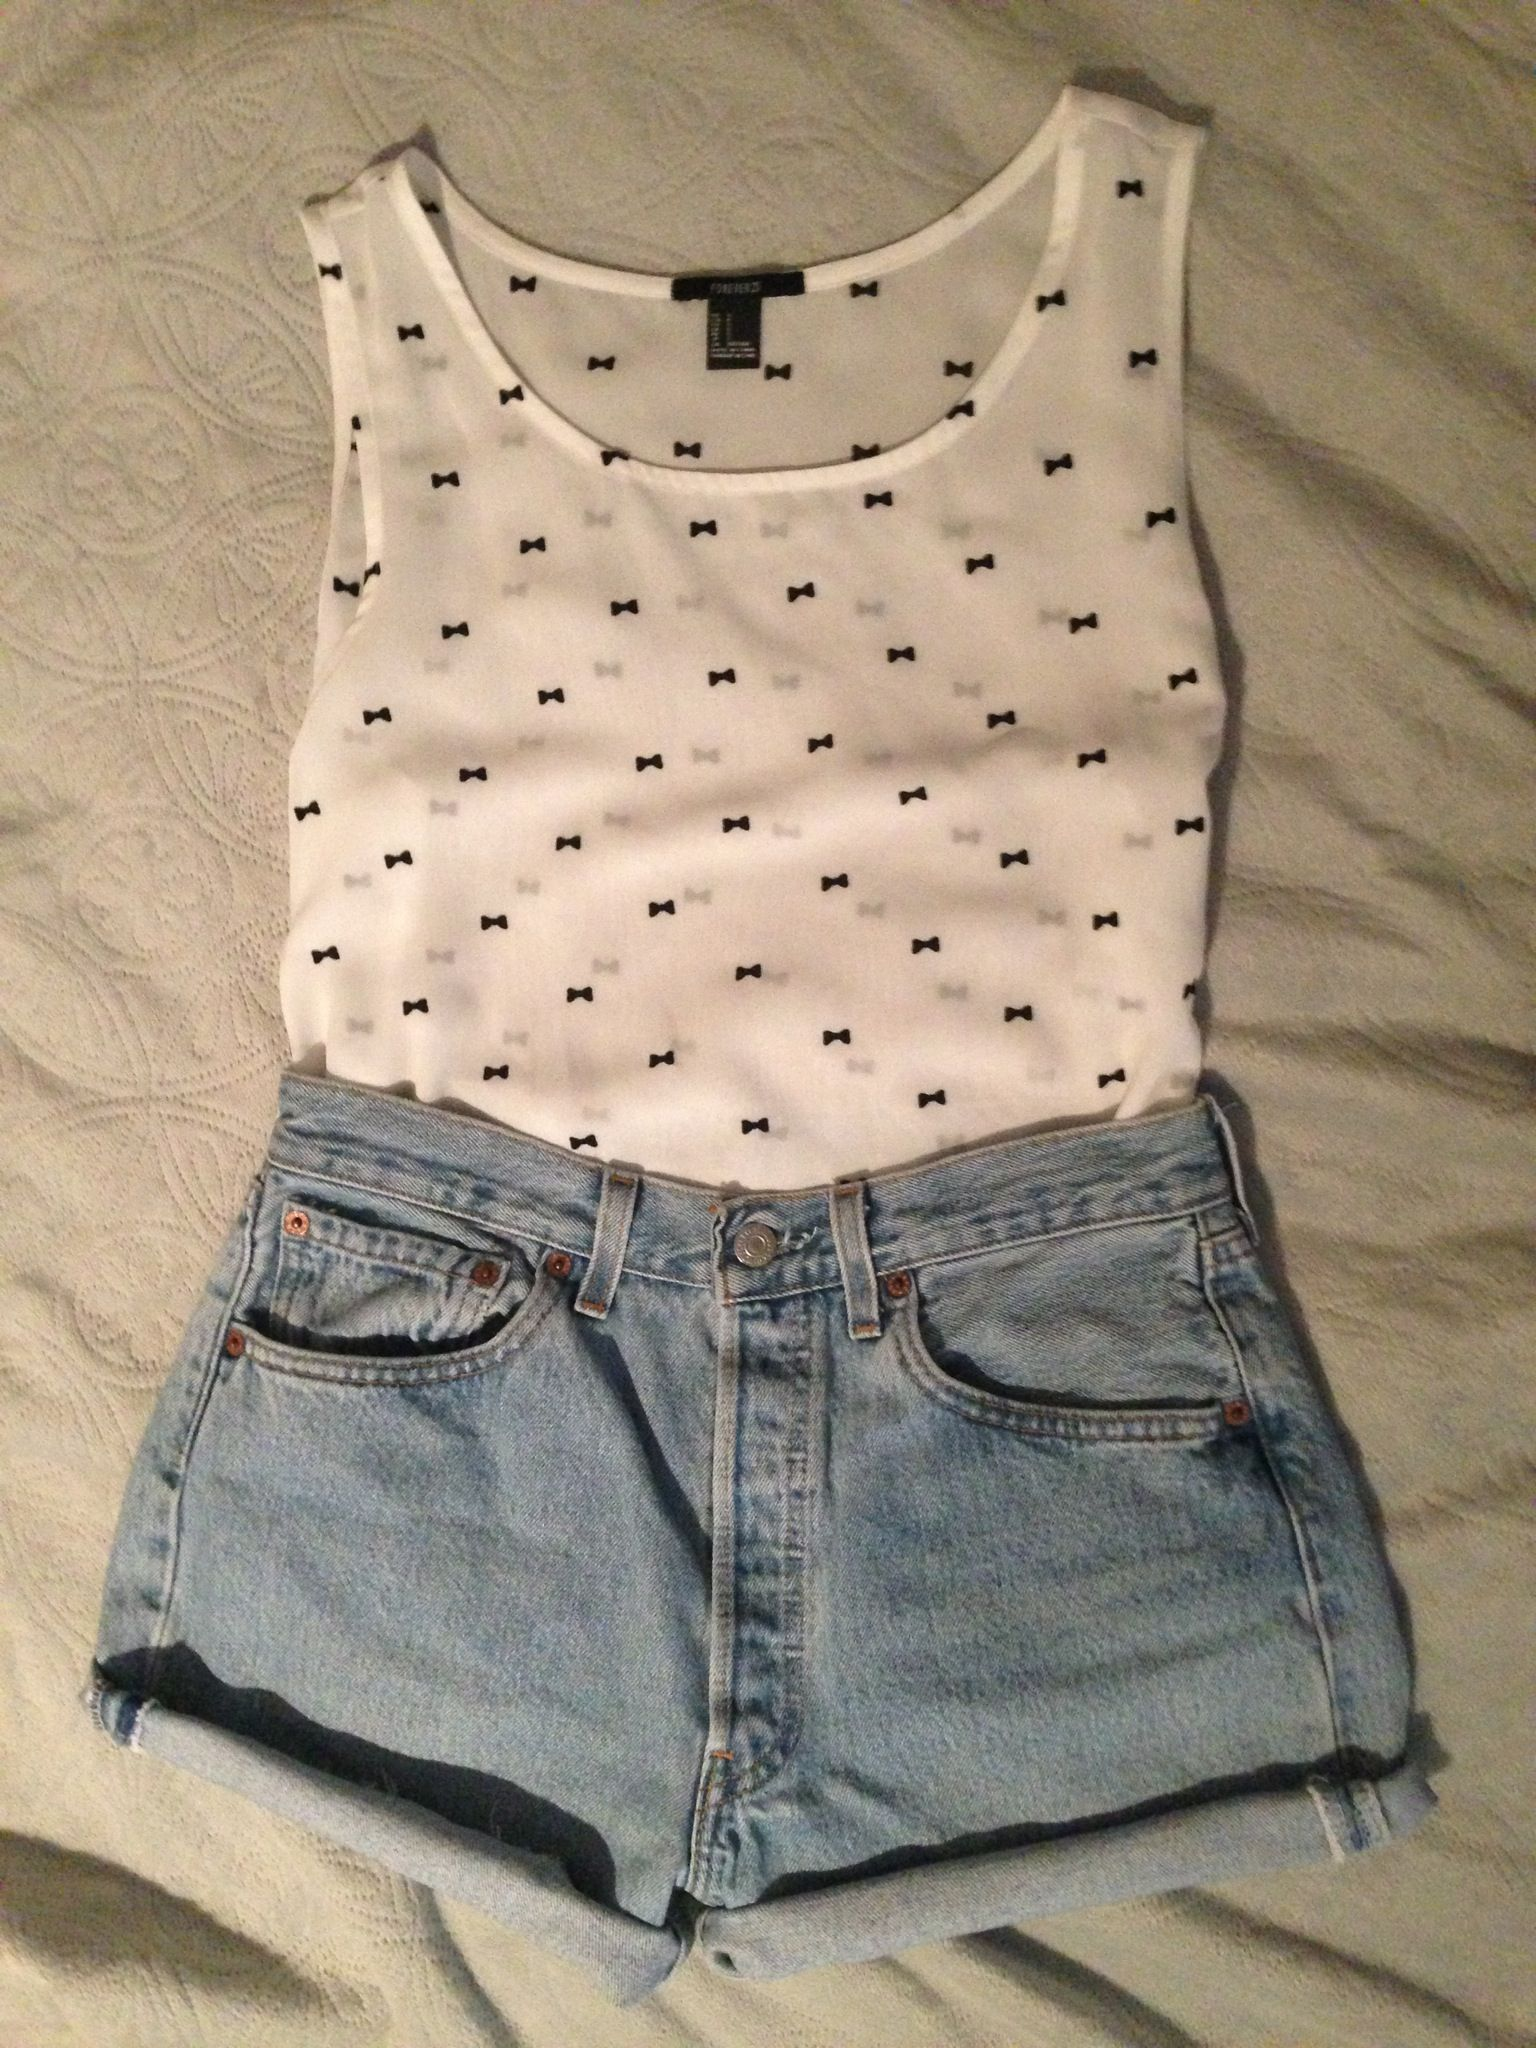 Summer outfit. High waisted shorts & sheer top | Clothes/Fashion ...